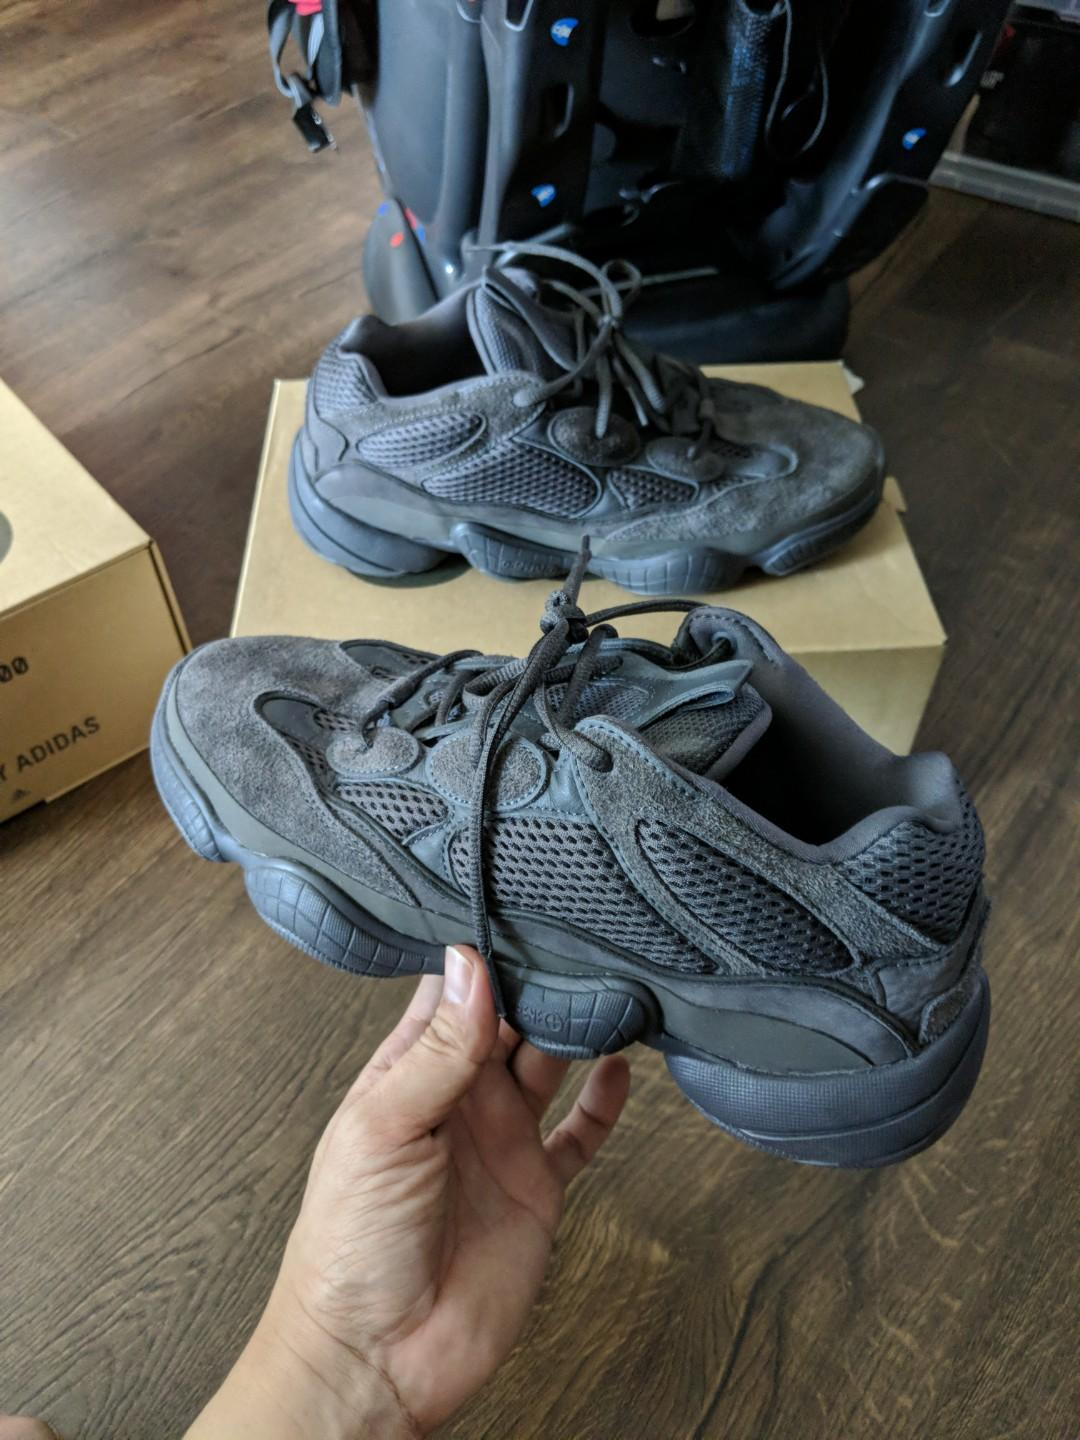 promo code 0592f 4e3d7 Price Firm / No TRADE : us10 Adidas Yeezy 500 Black boost ...